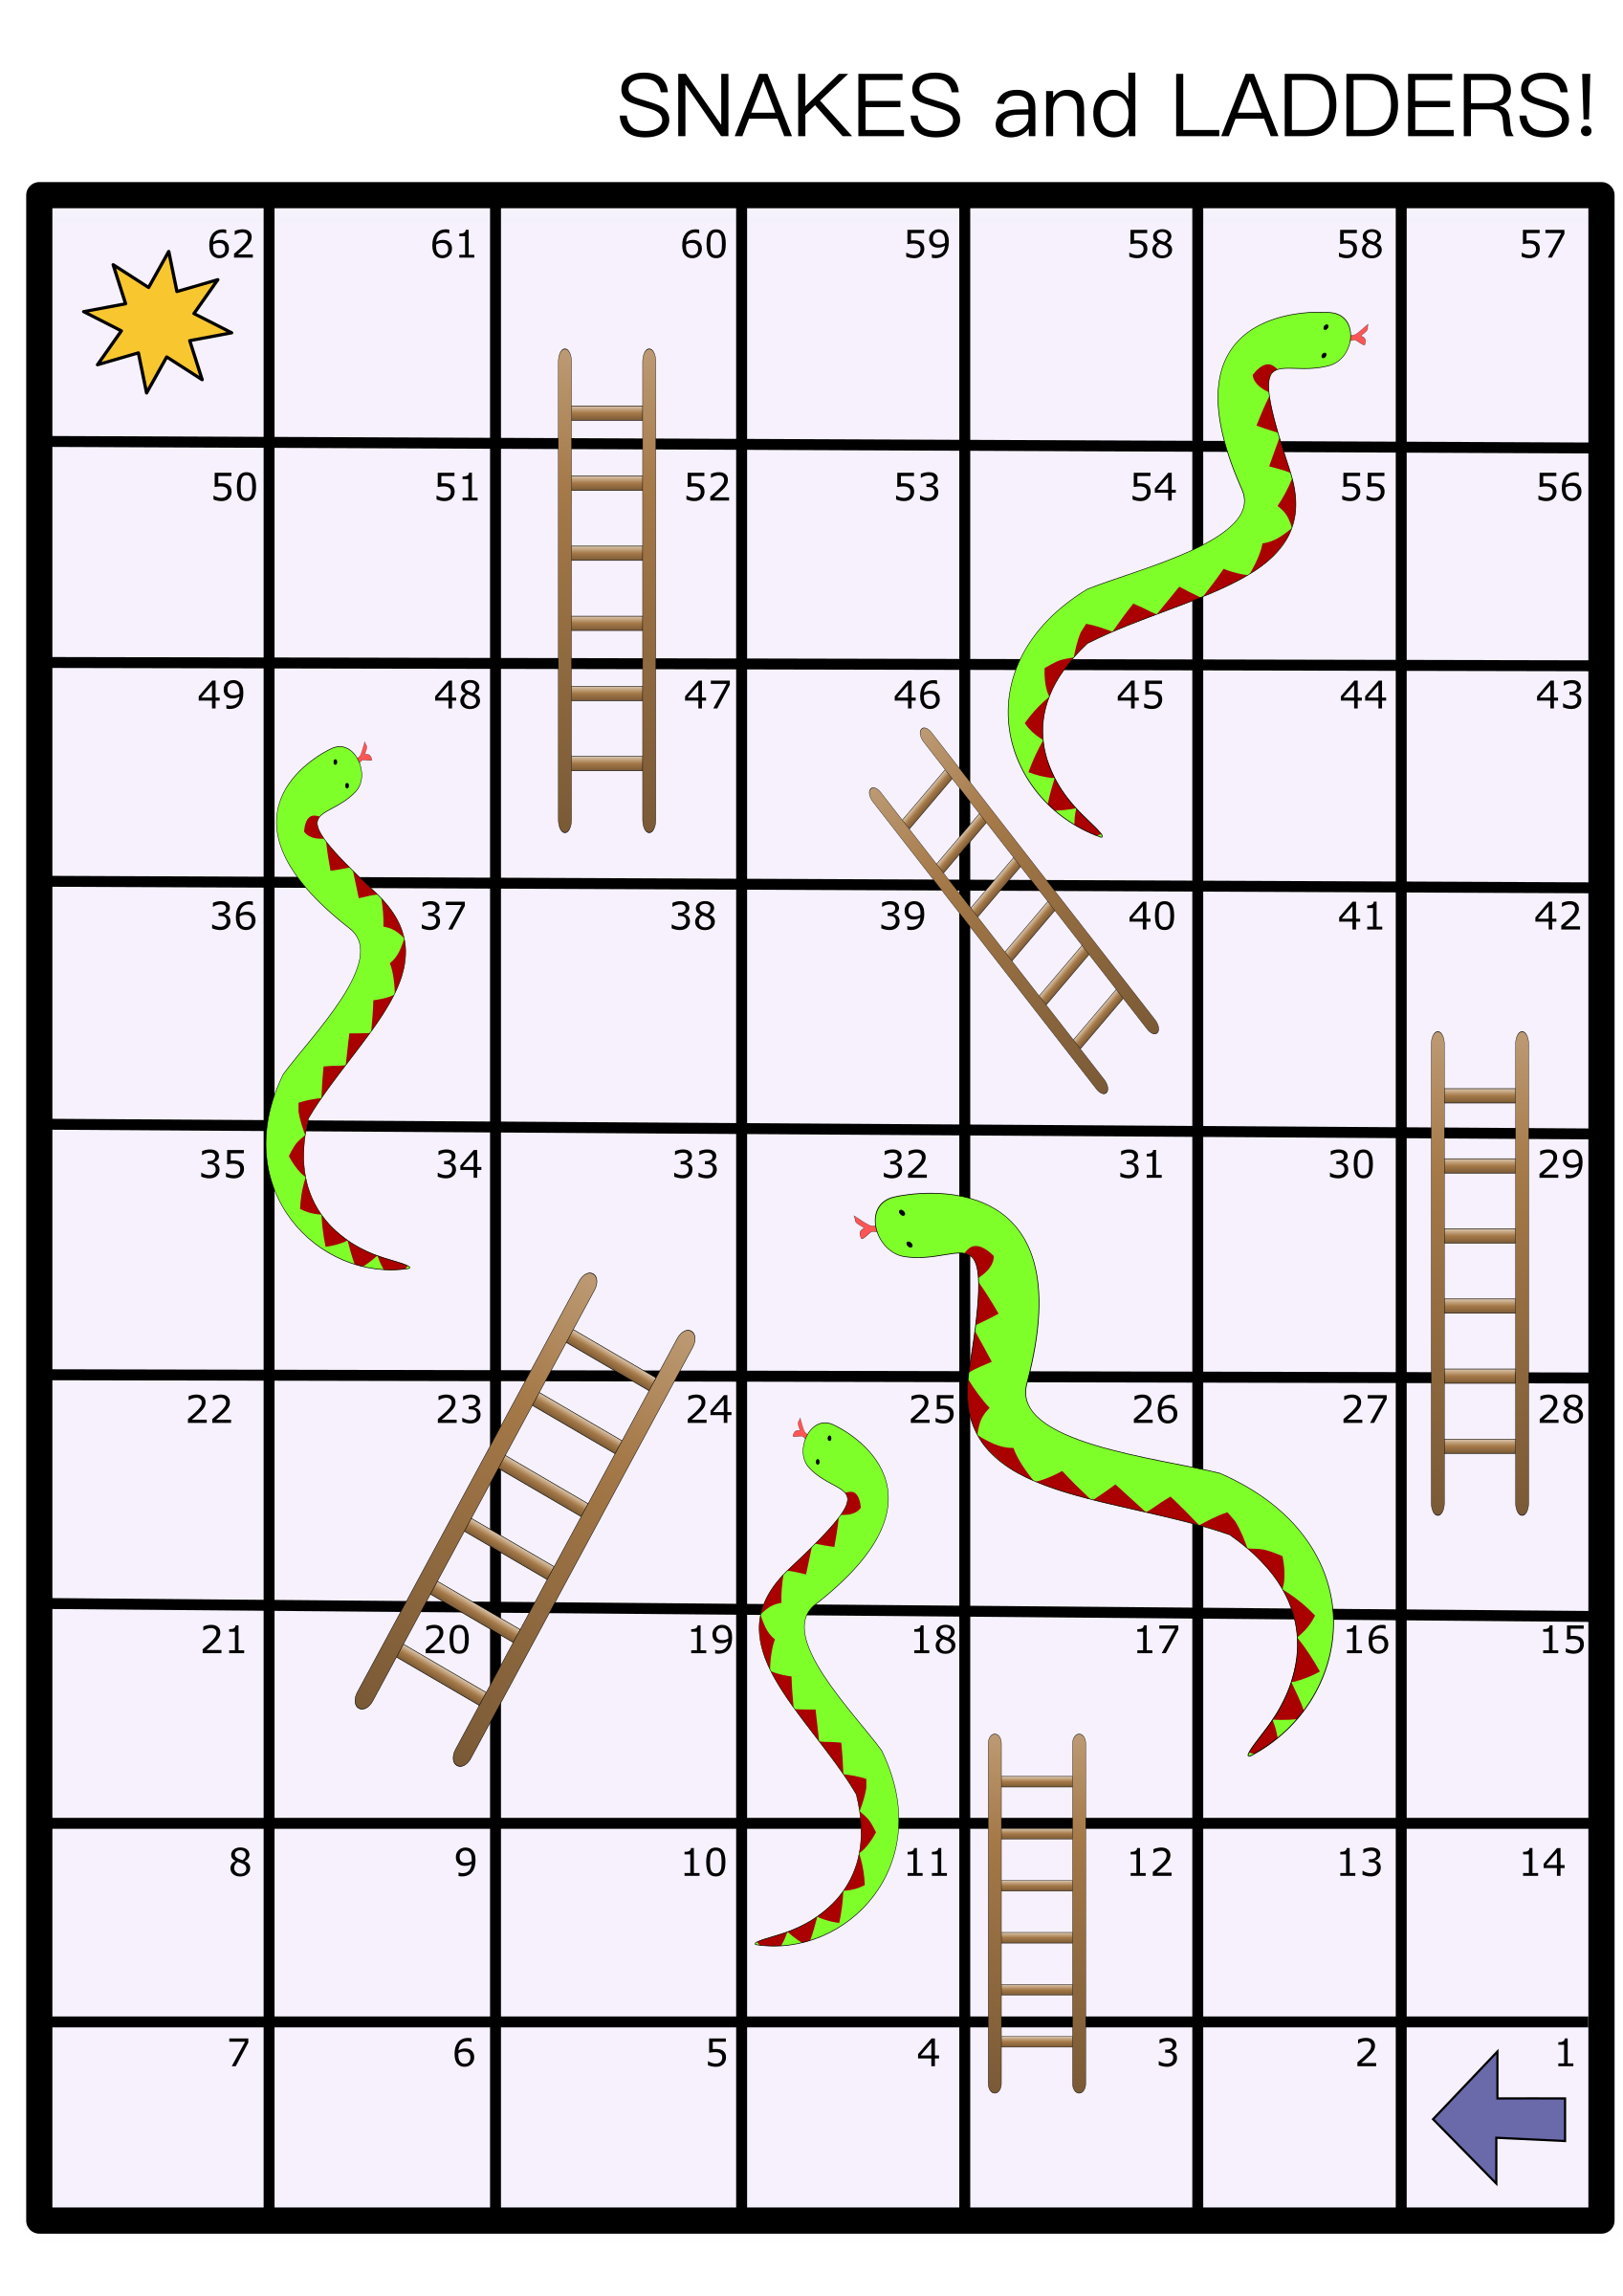 snakes and ladders printable template - clipart snakes and ladders board game